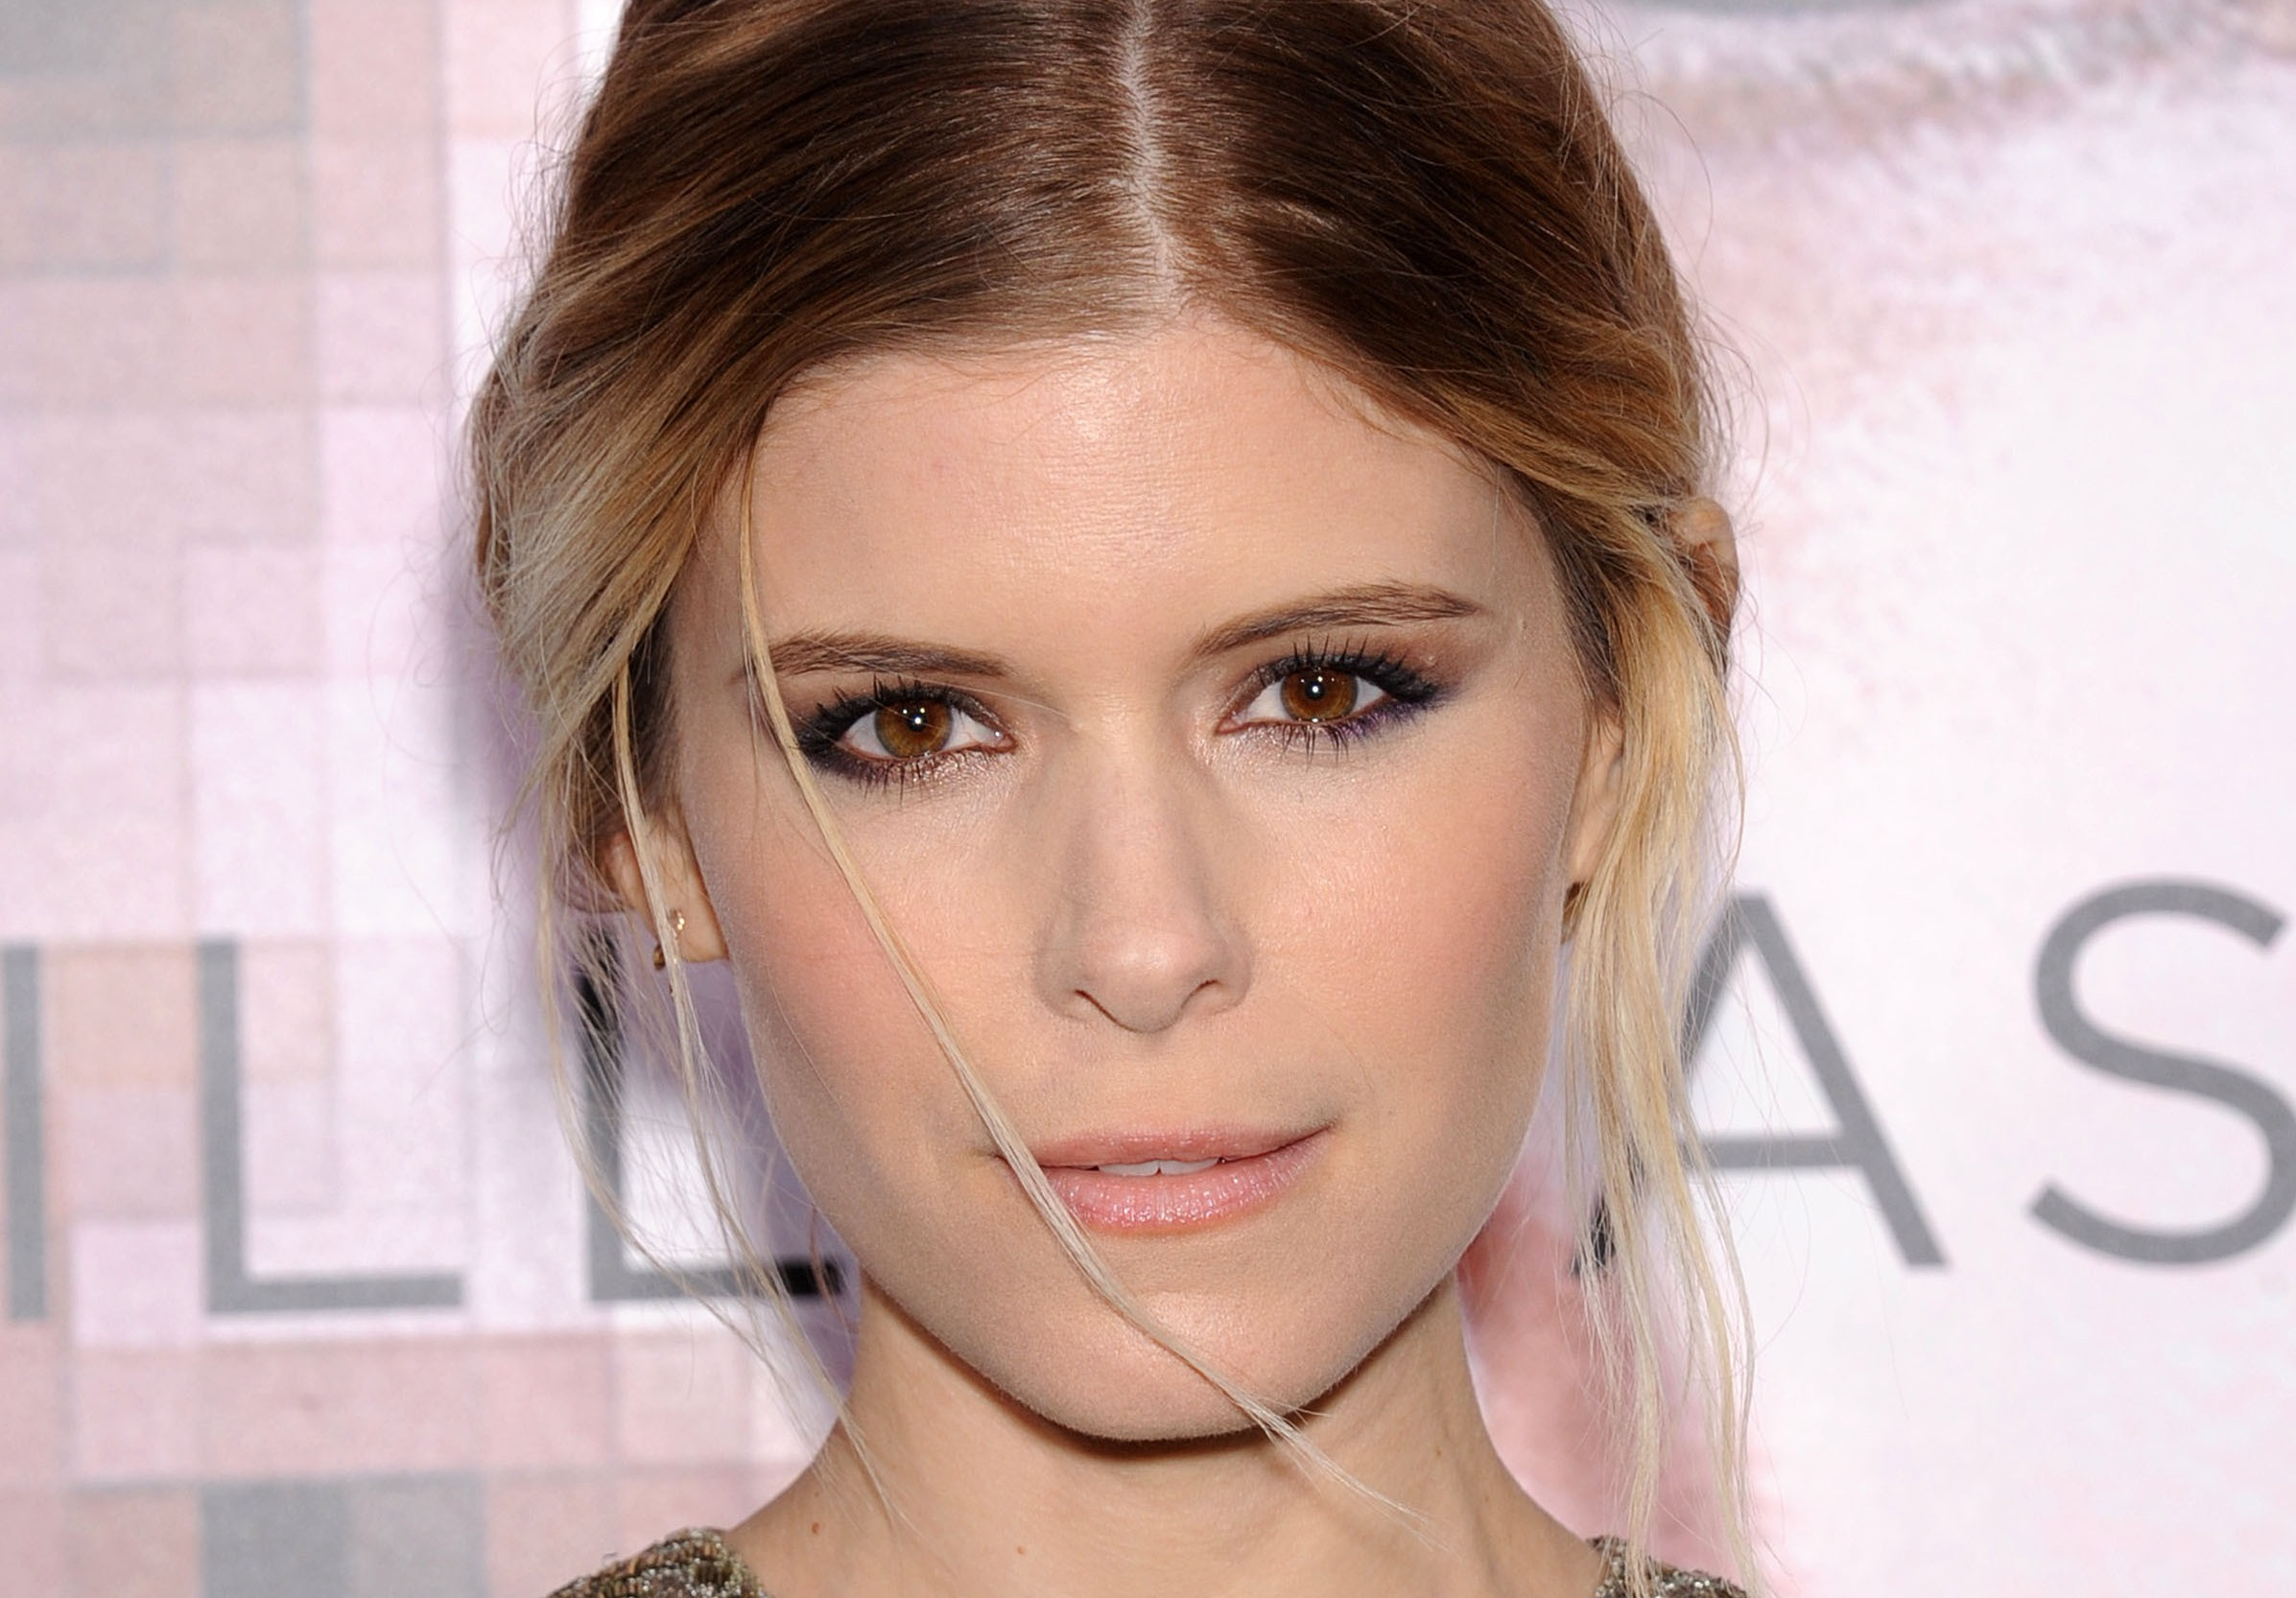 'Captive' Movie Star Kate Mara's Net Worth and Rise to Fame